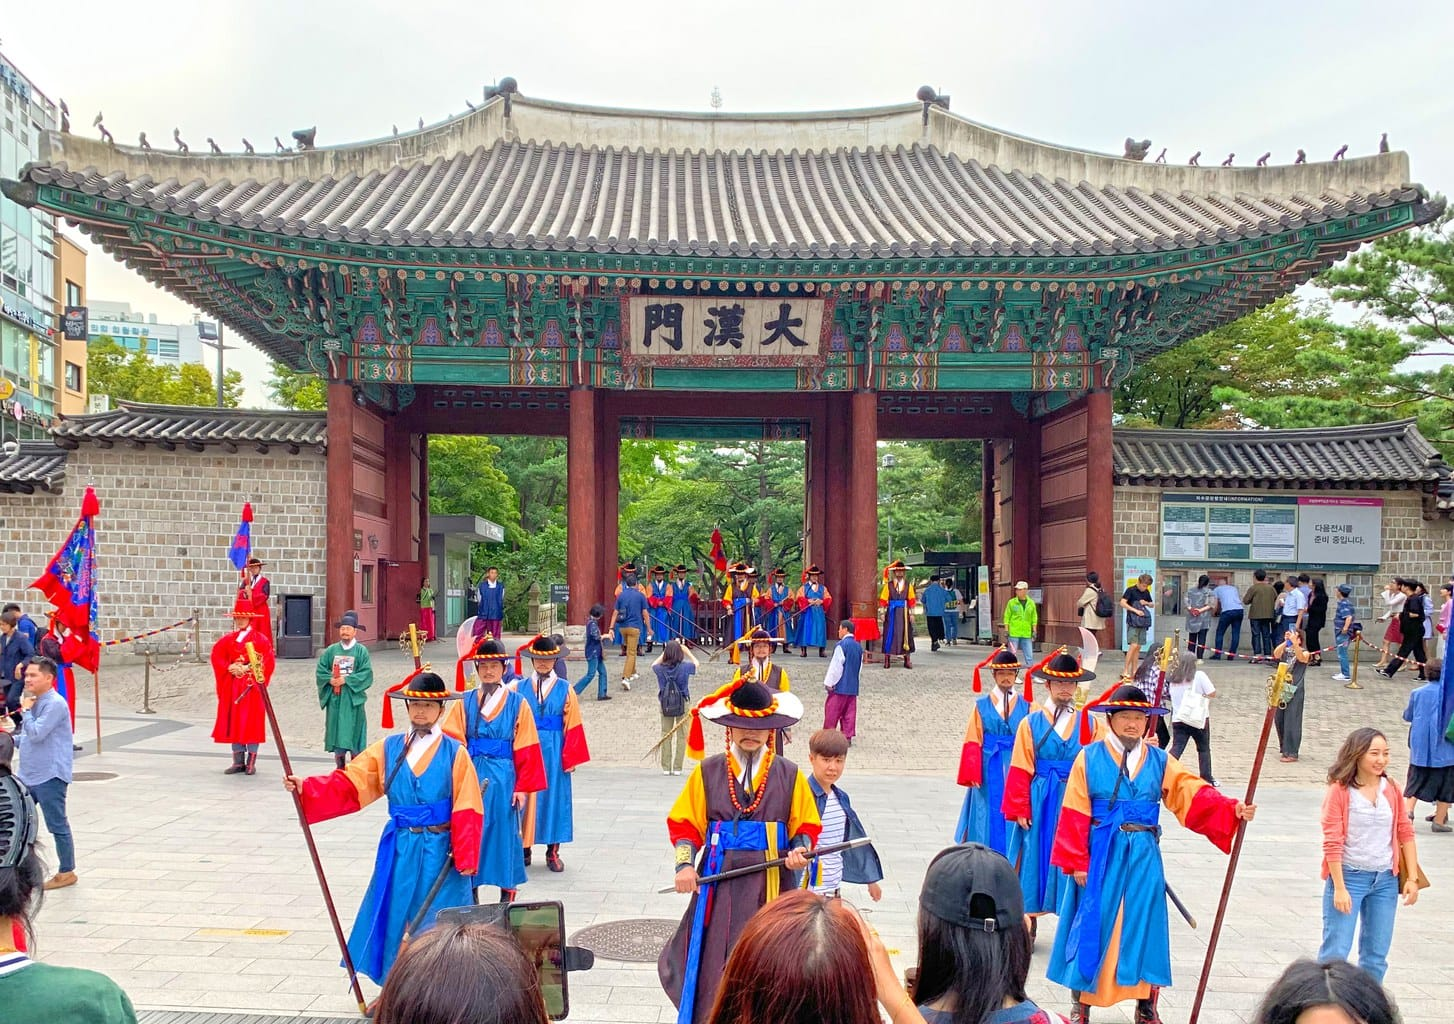 Changing of the guards in front of Deokhongjeon Palace Gate